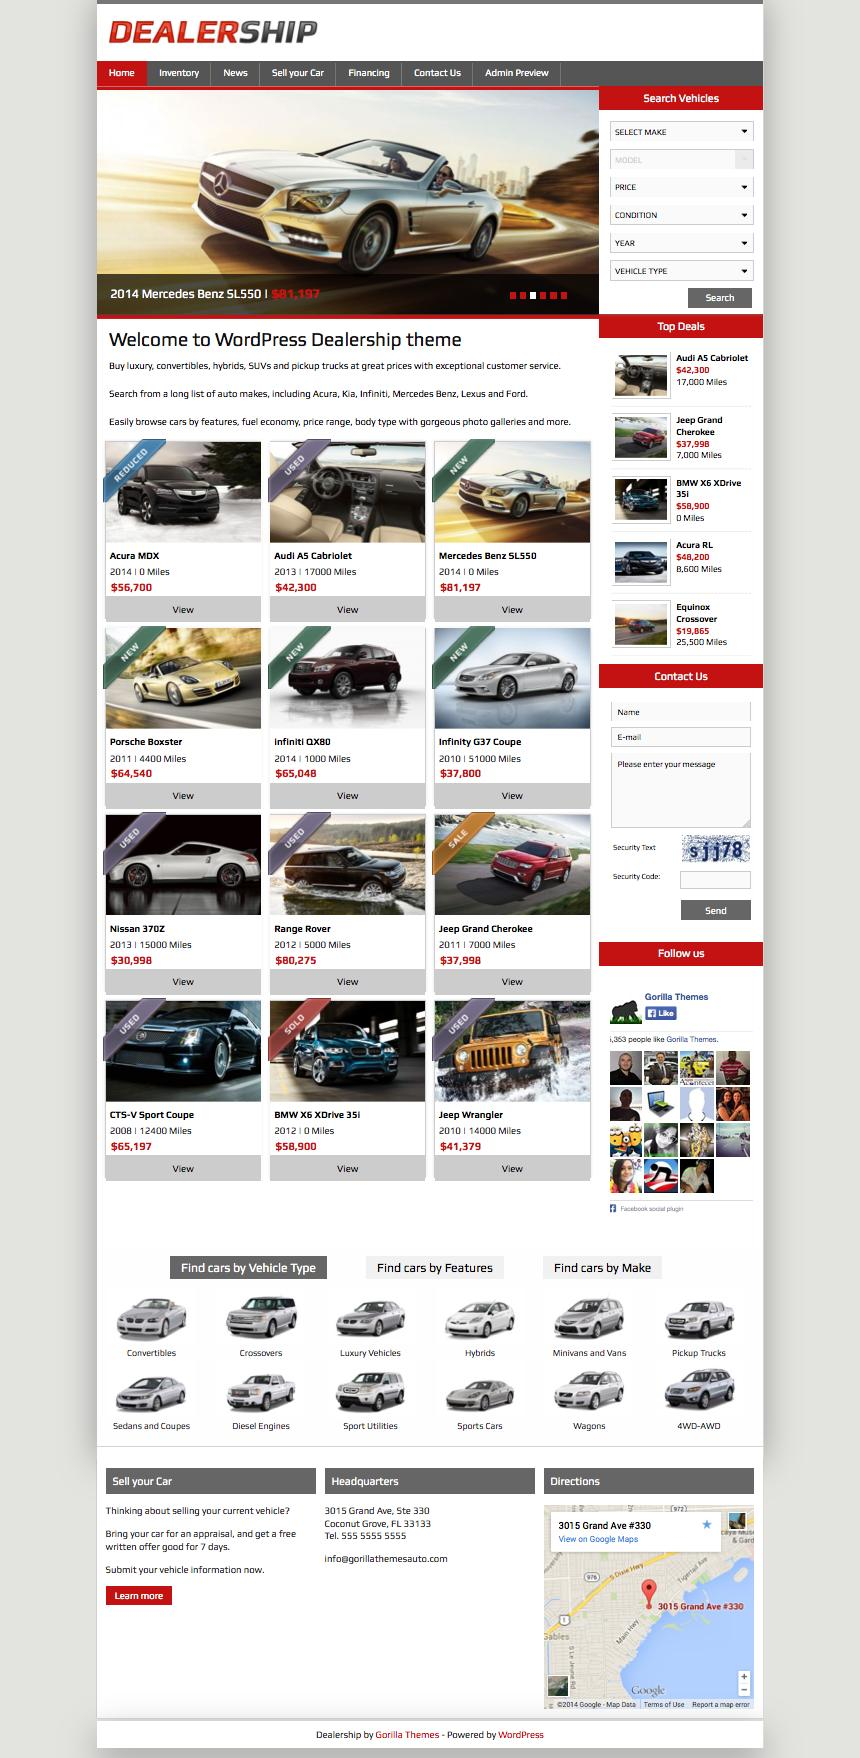 Dealership – VIN Decoder, Craigslist Integration for Vehicles ...